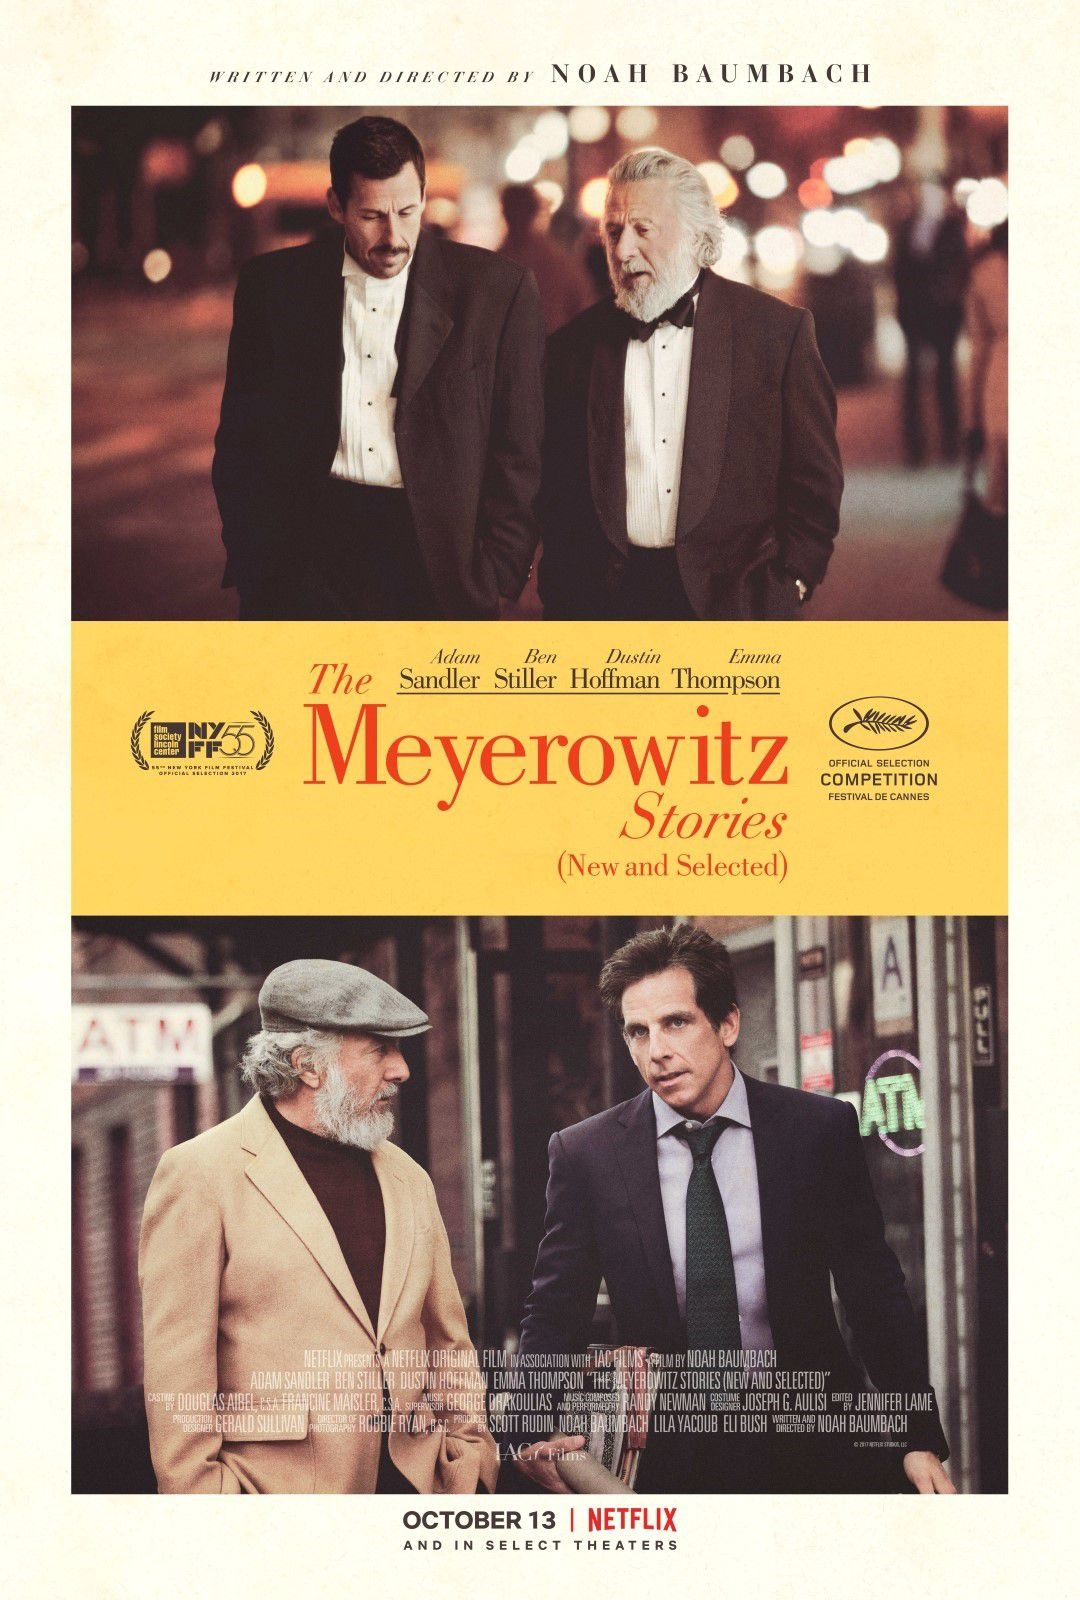 The Meyerowitz Stories (New and Selected) - Film (2017)